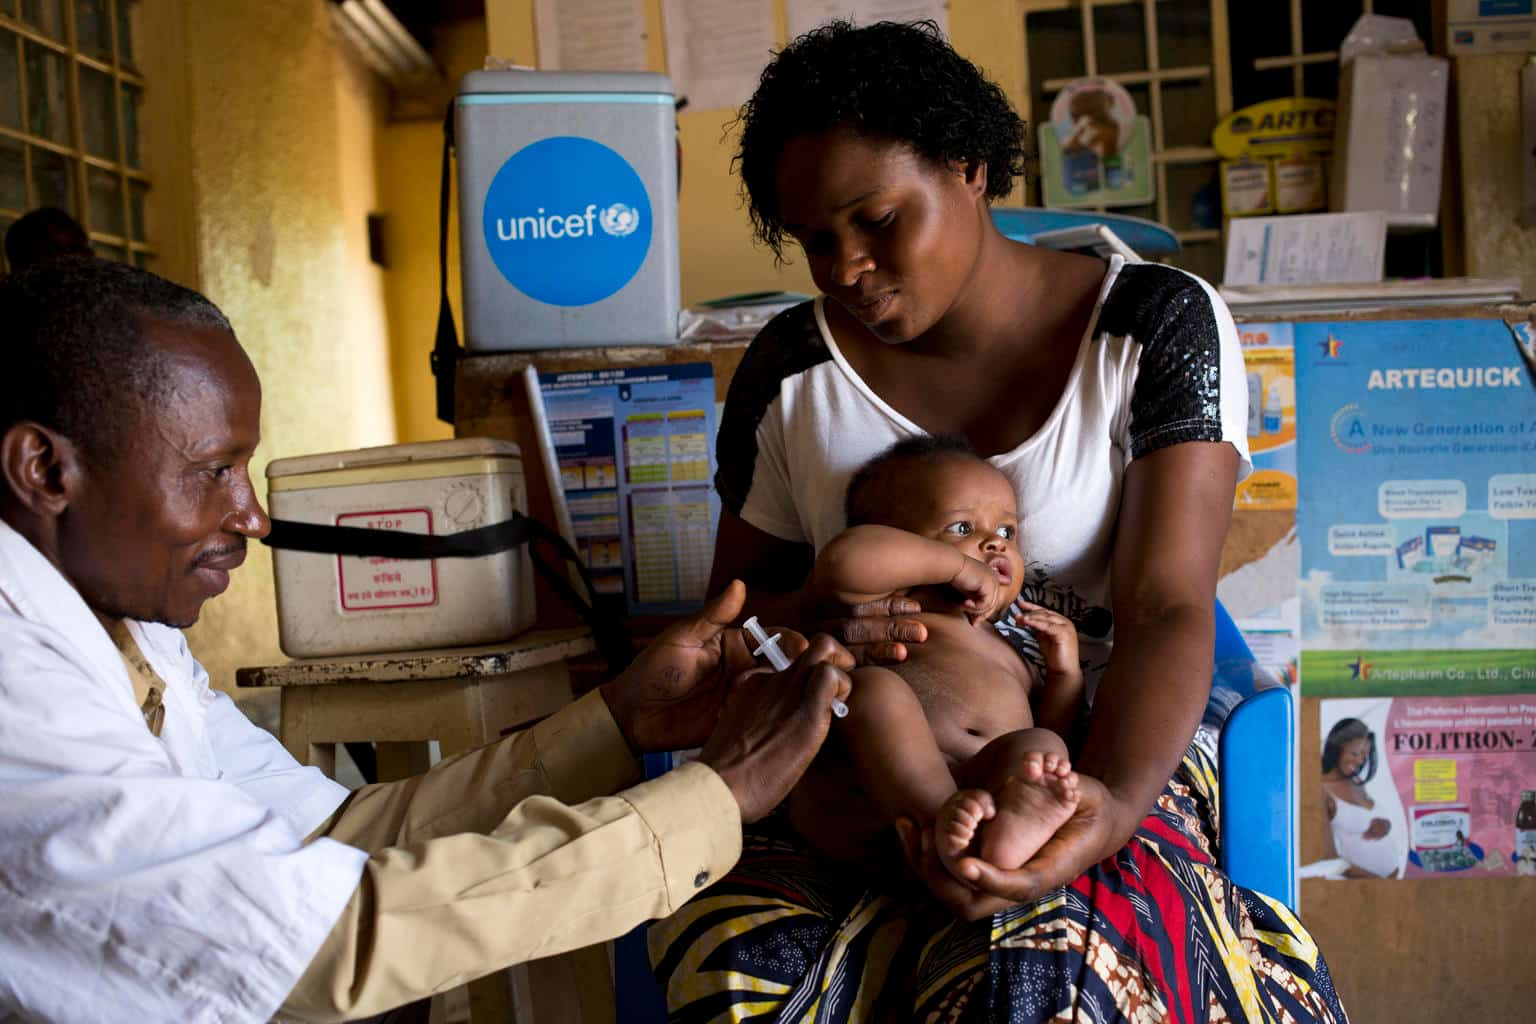 Democratic Republic of Congo | ©UNICEF/UN0270015